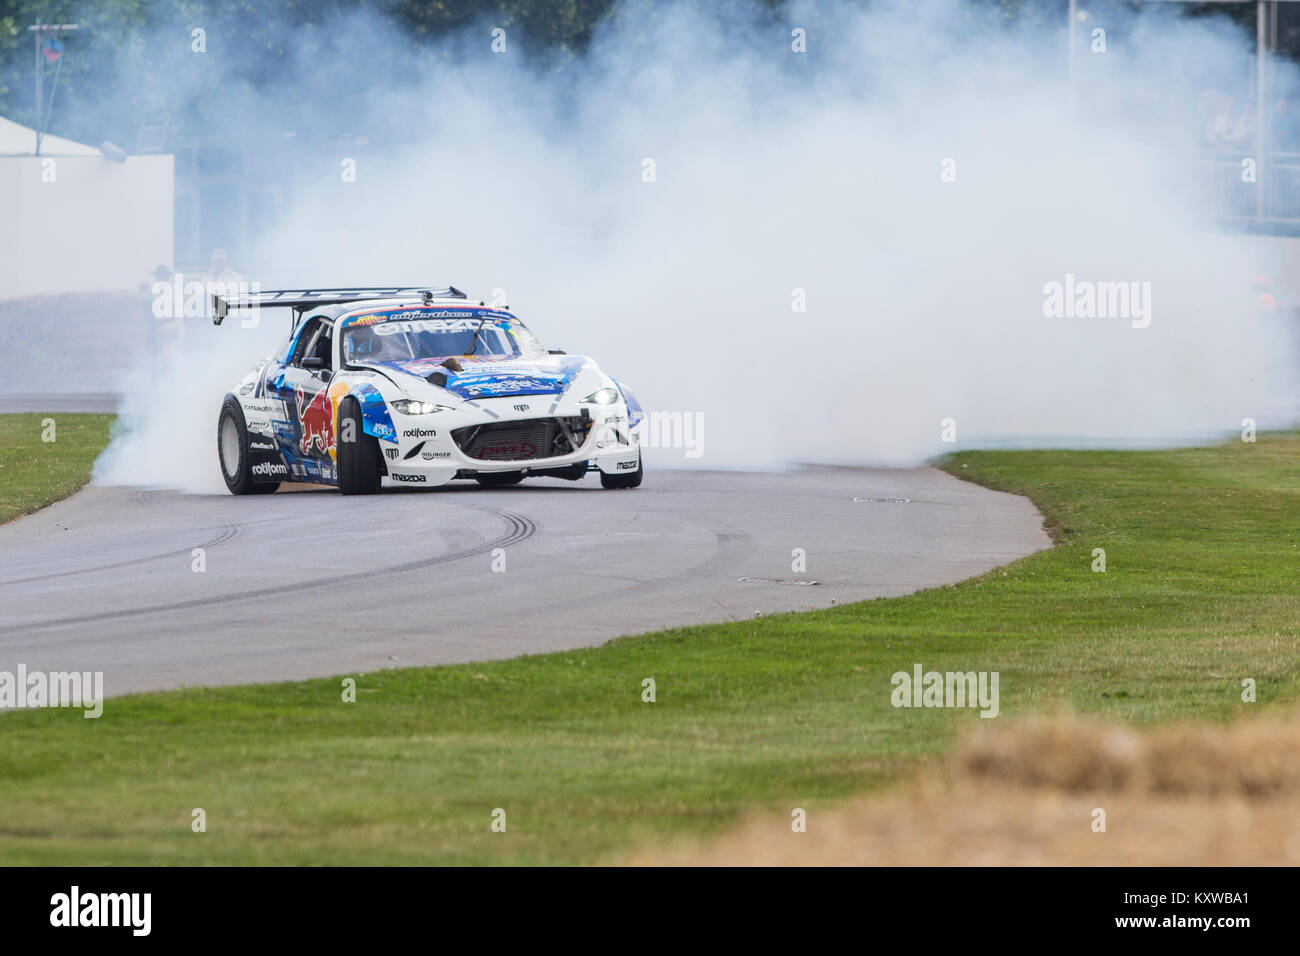 Mad Mike Drifting at Goodwood Festival of Speed - Stock Image